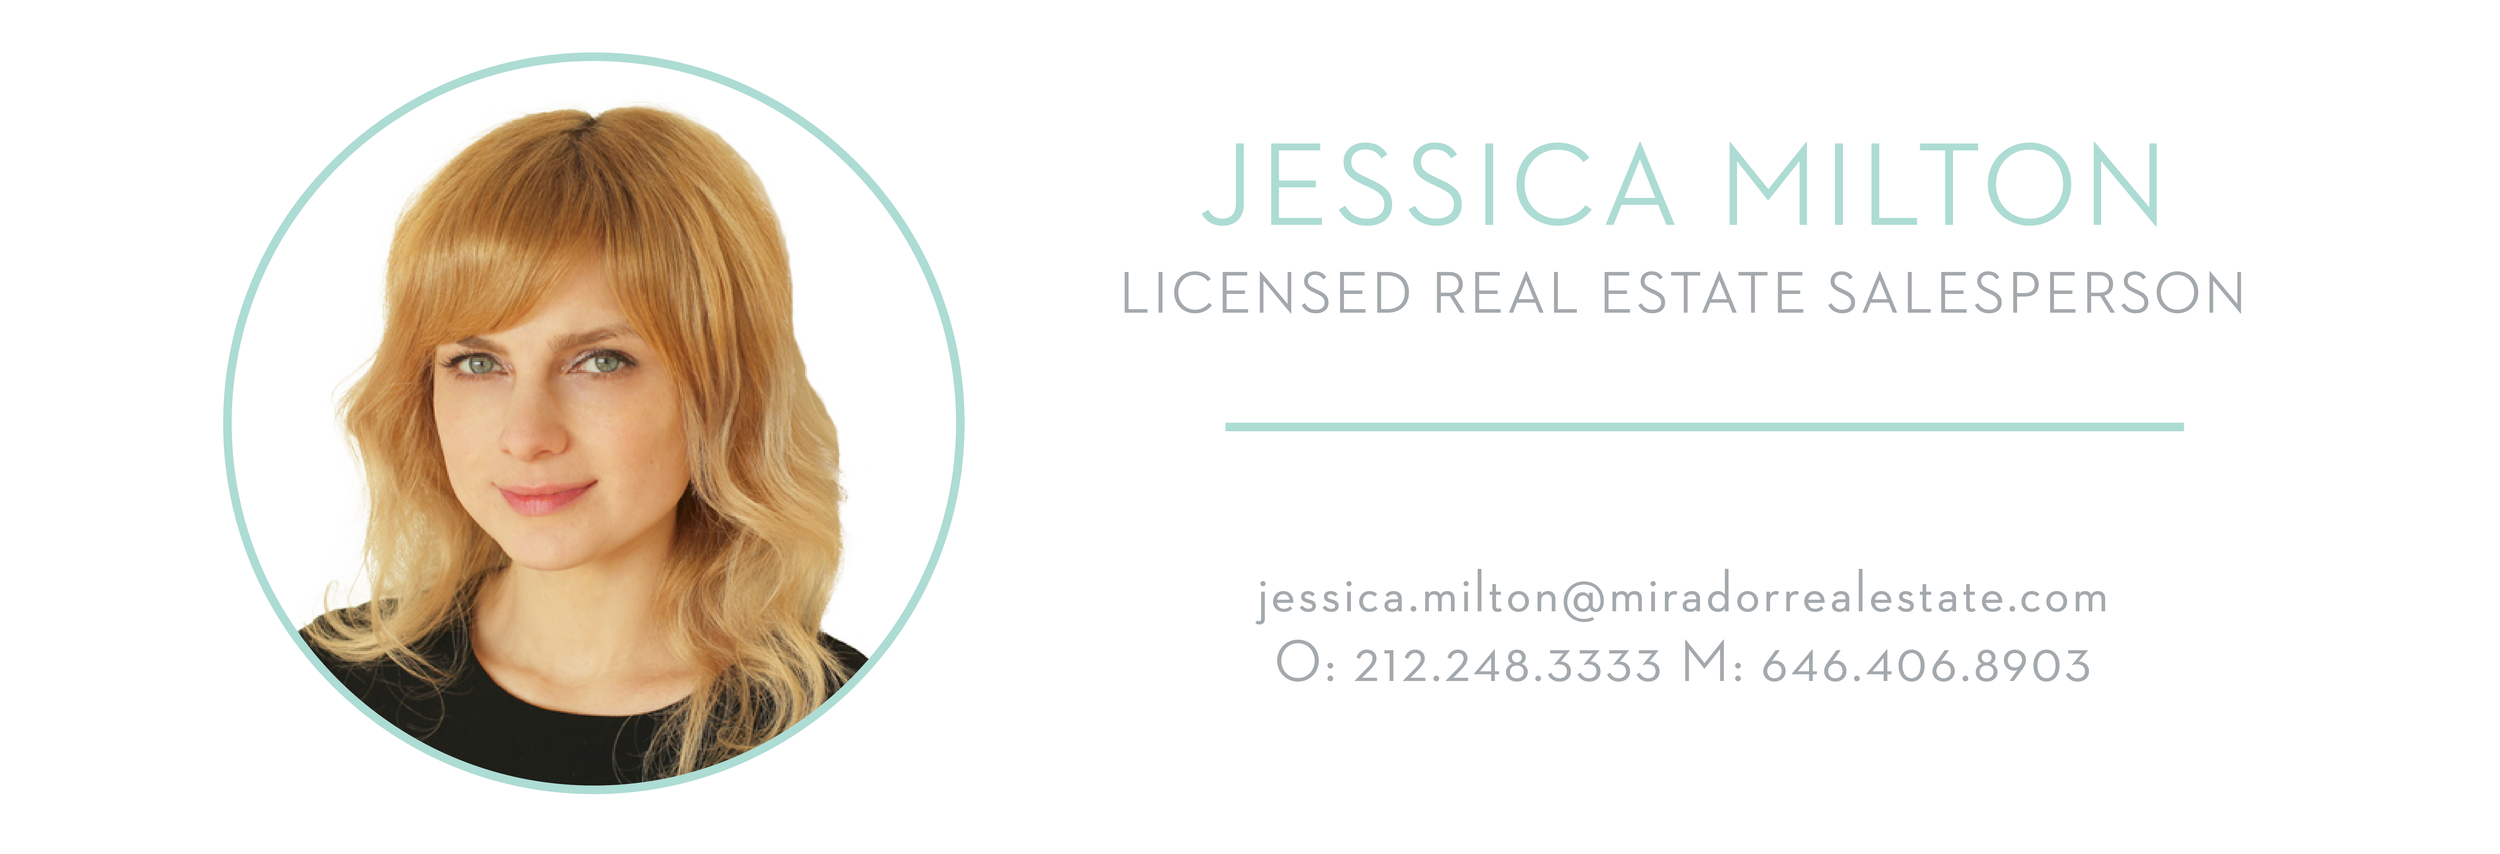 jess milton contact card.png